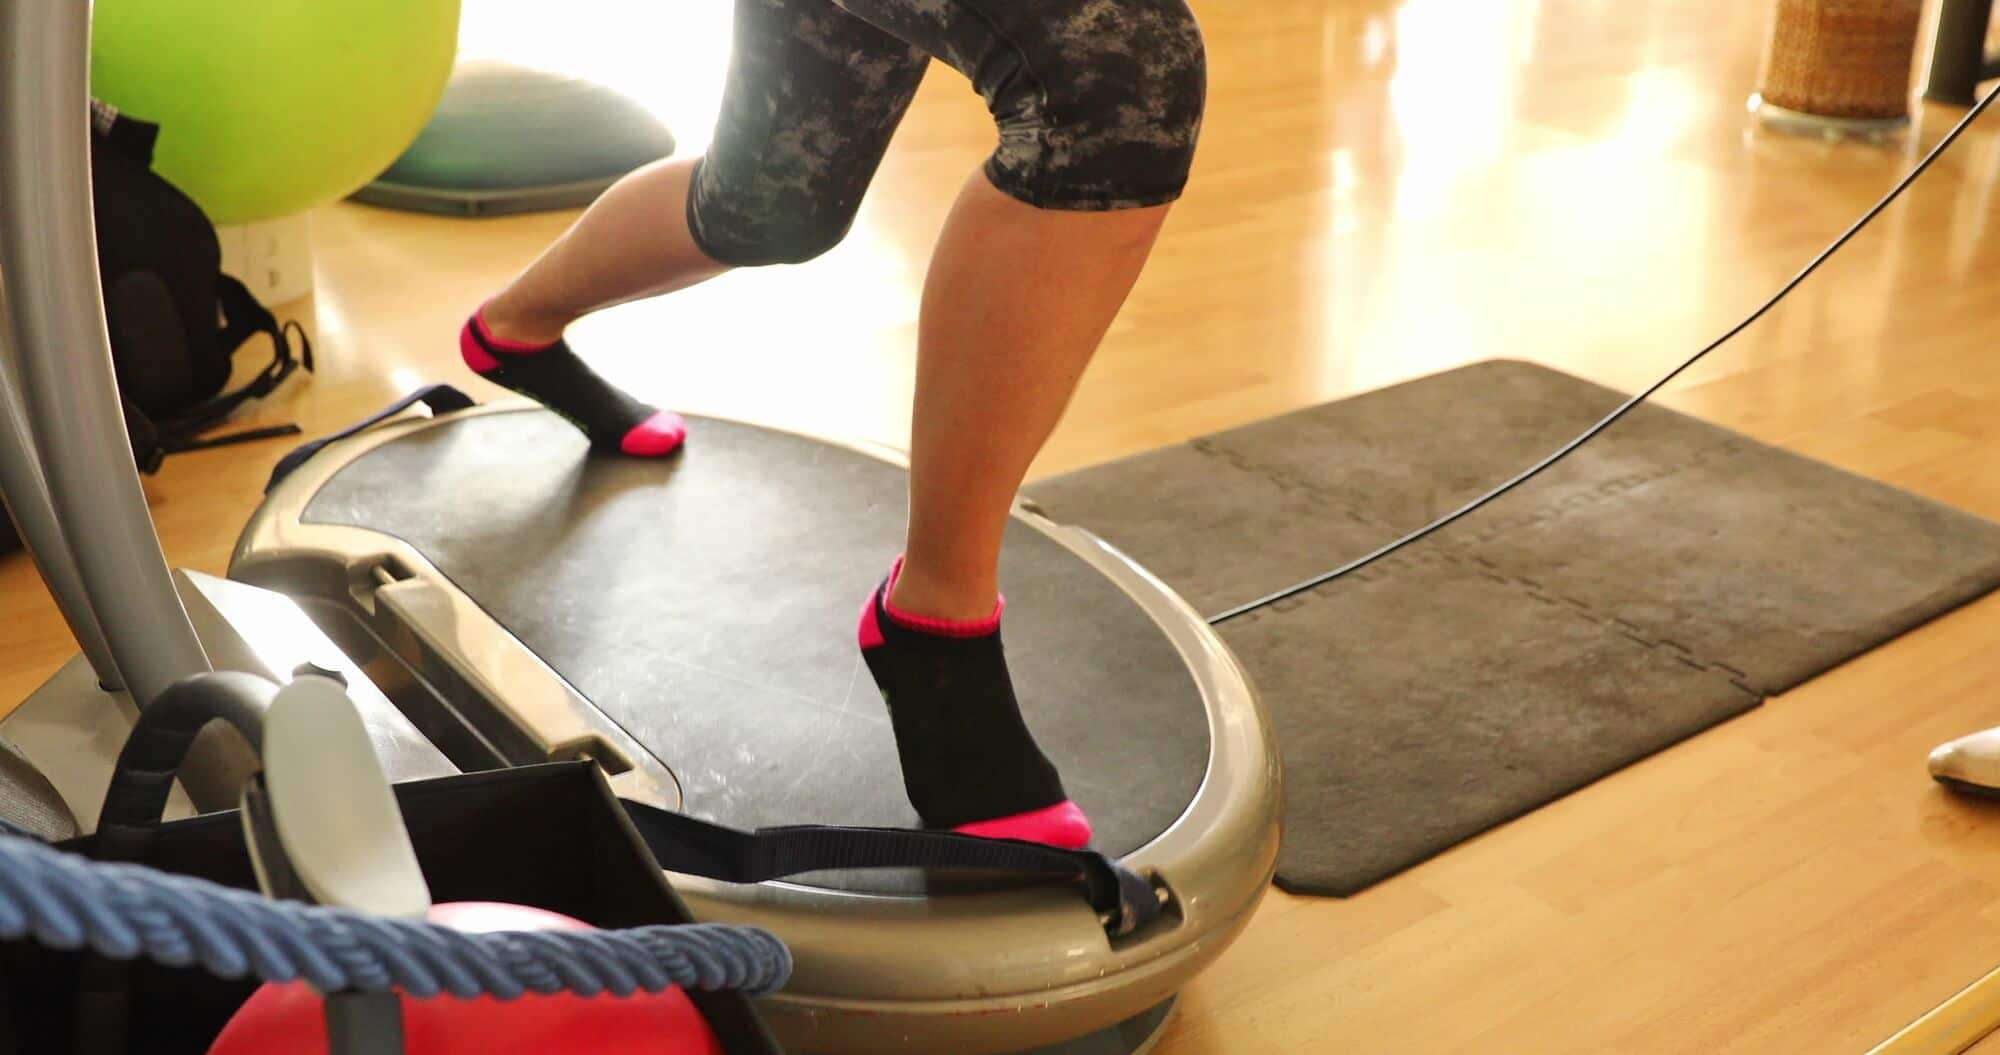 lose weight vibration machine - Fitness Expo